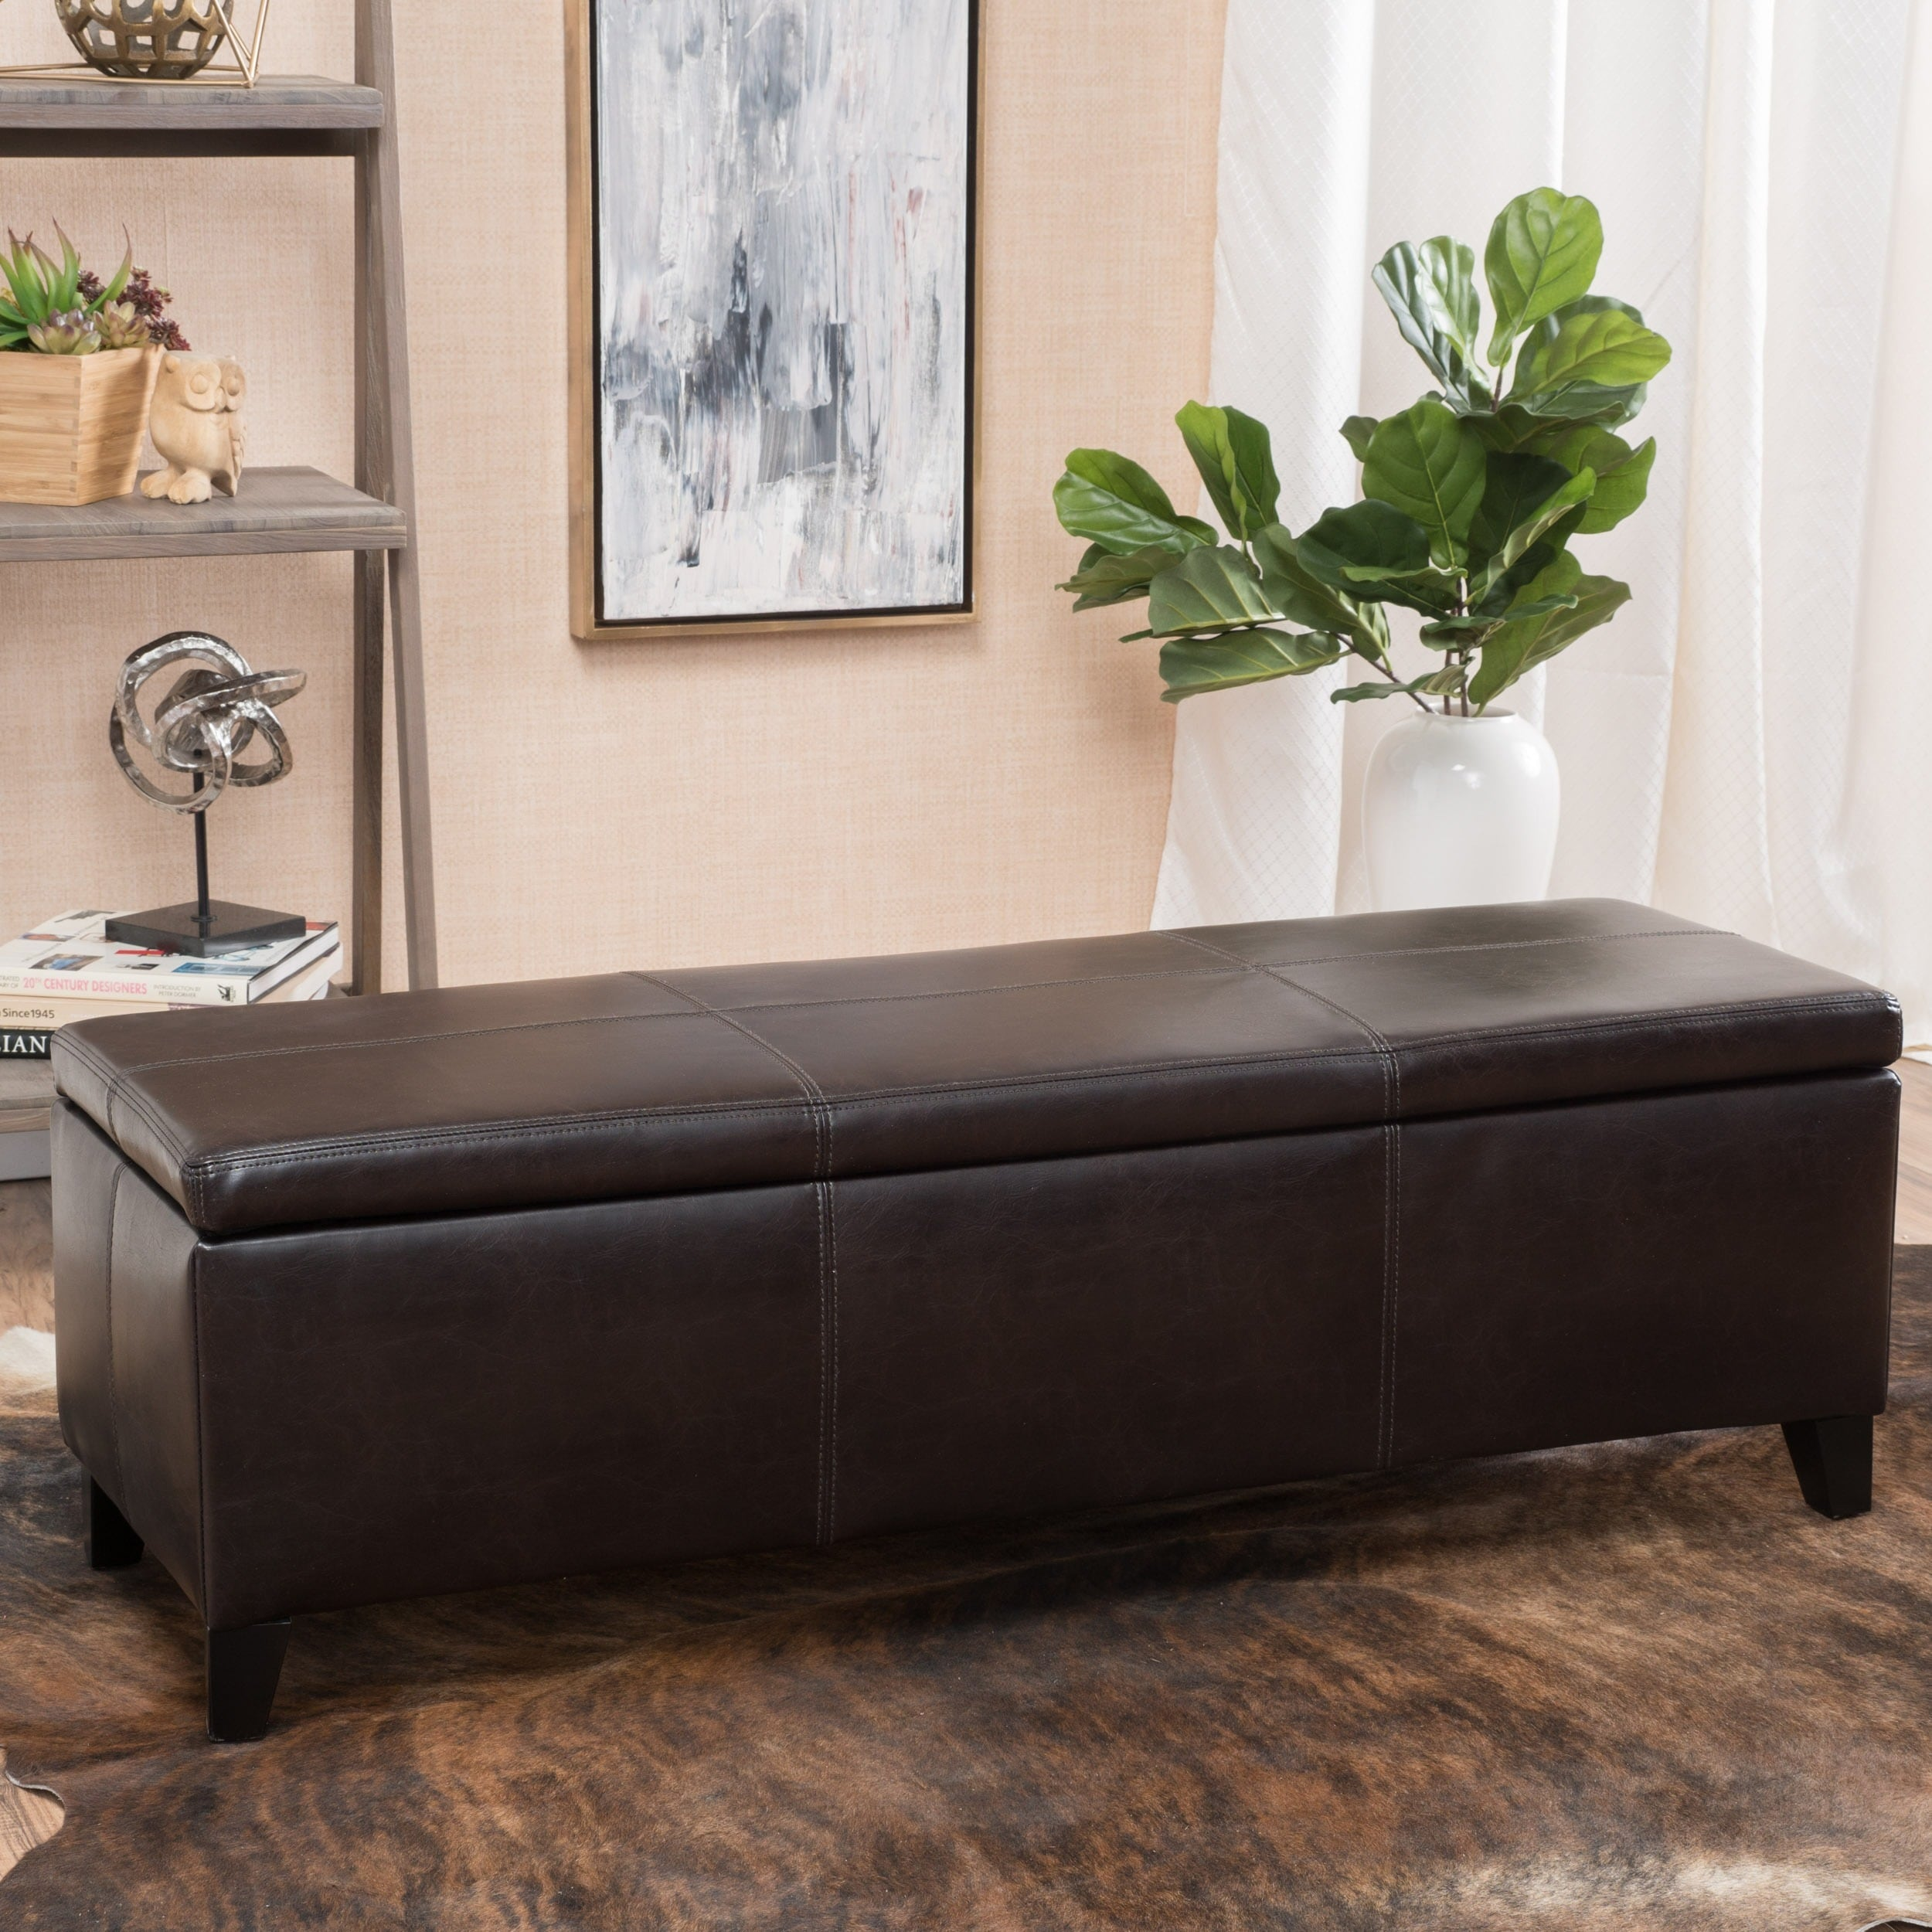 Lucinda Faux Leather Storage Bench   Free Shipping Today   Overstock    18383734